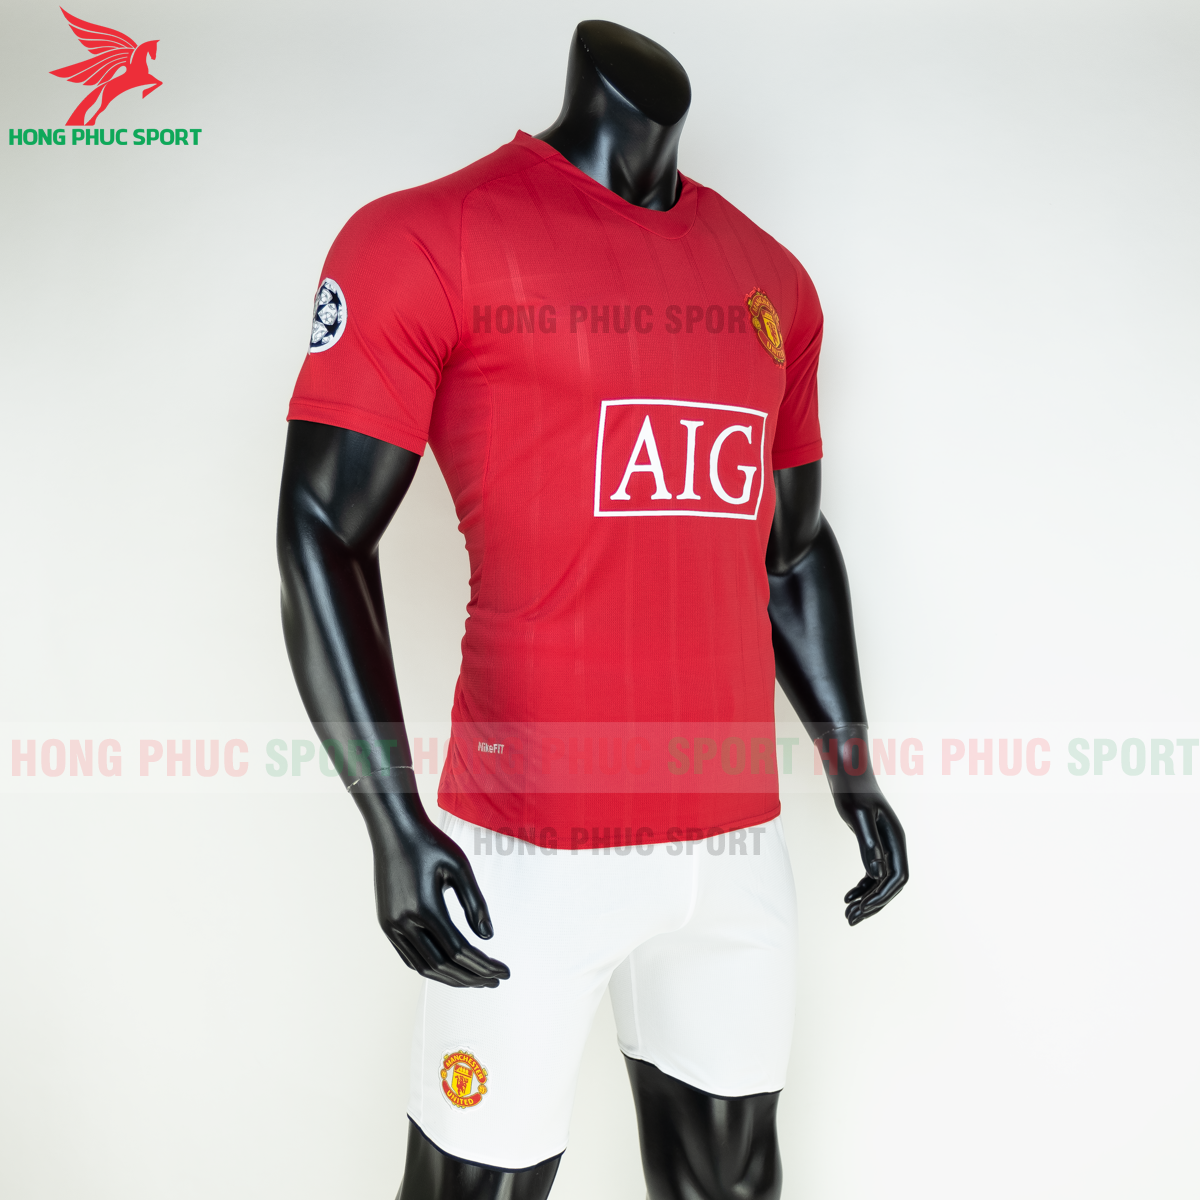 https://cdn.hongphucsport.com/unsafe/s4.shopbay.vn/files/285/ao-manchester-united-2008-2009-san-nha-hang-thailand-5-5fb1fa67062ce.png